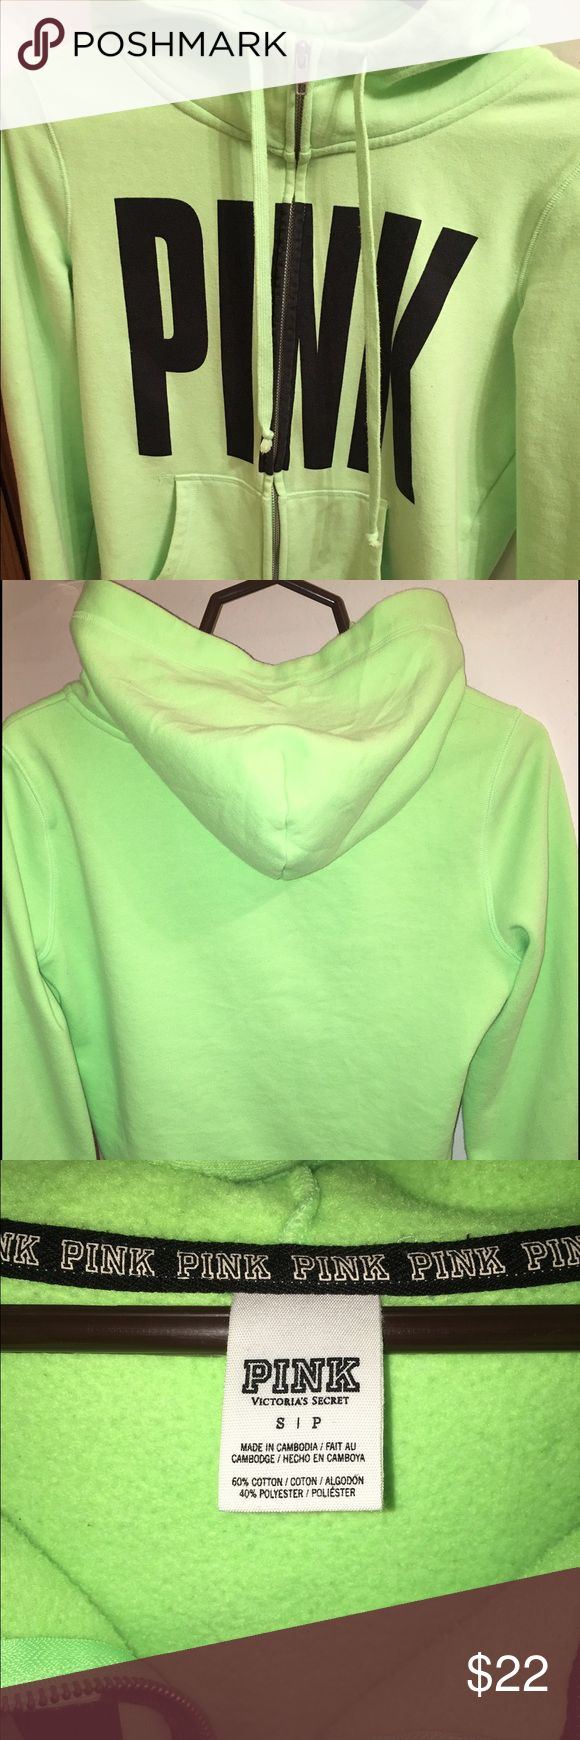 ✨PINK VS Lime Green Zip Up Hoodie size Small ✨PINK VS Lime Green Zip Up Hoodie Size Small No stains, in good condition PINK Victoria's Secret Tops Sweatshirts & Hoodies